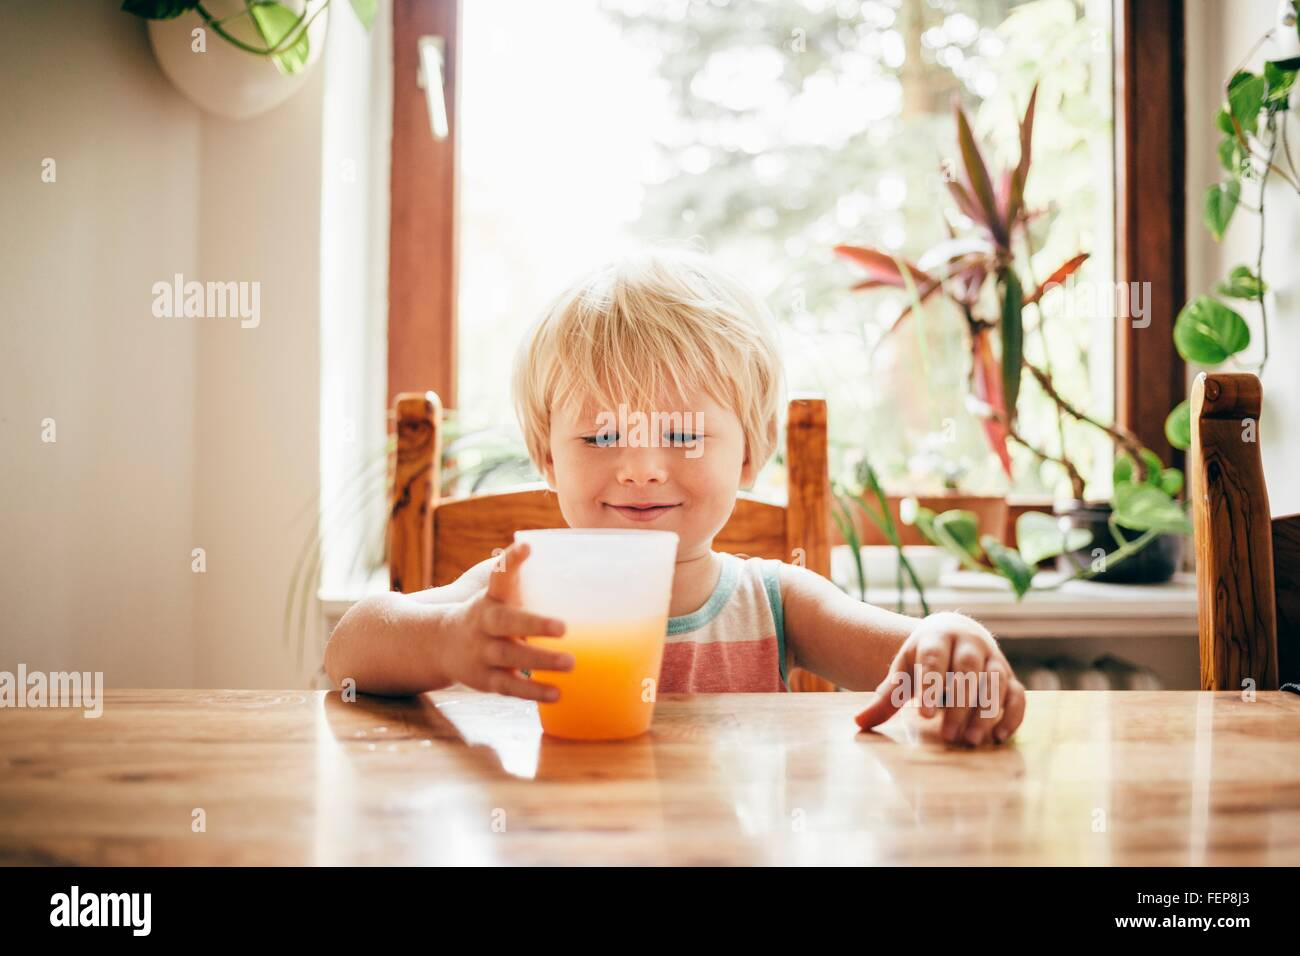 Boy sitting at table with beaker of orange juice looking down smiling - Stock Image